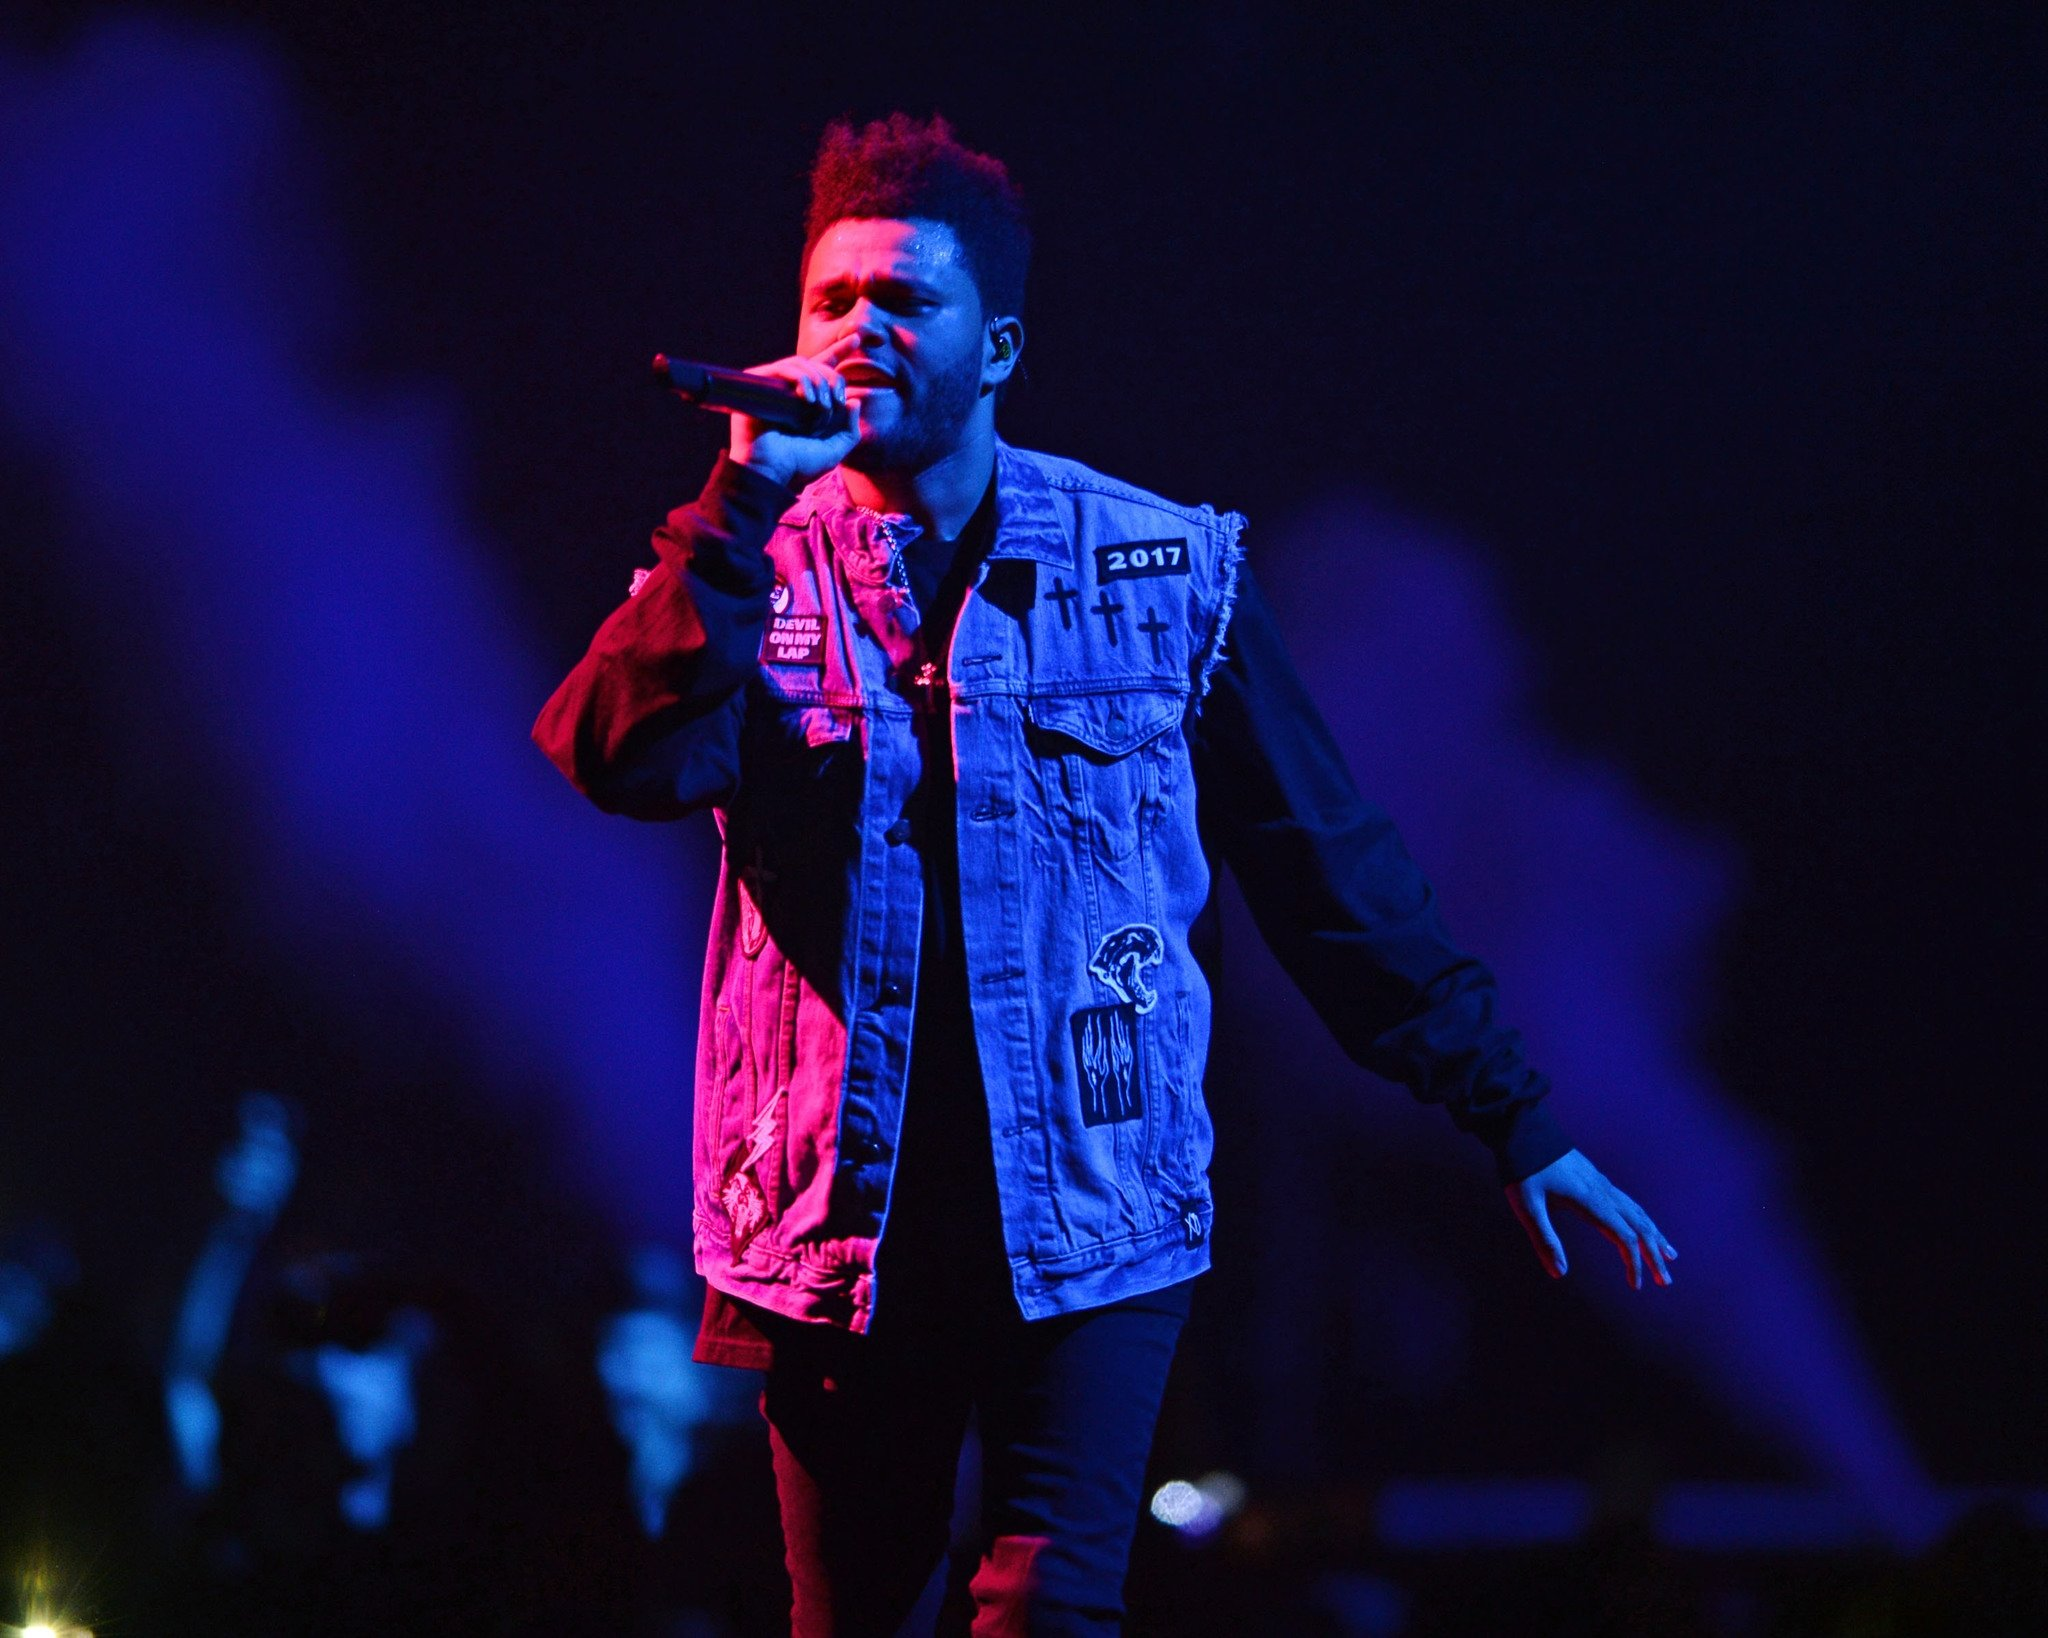 KALBİ KIRIK BİR ADAM: THE WEEKND